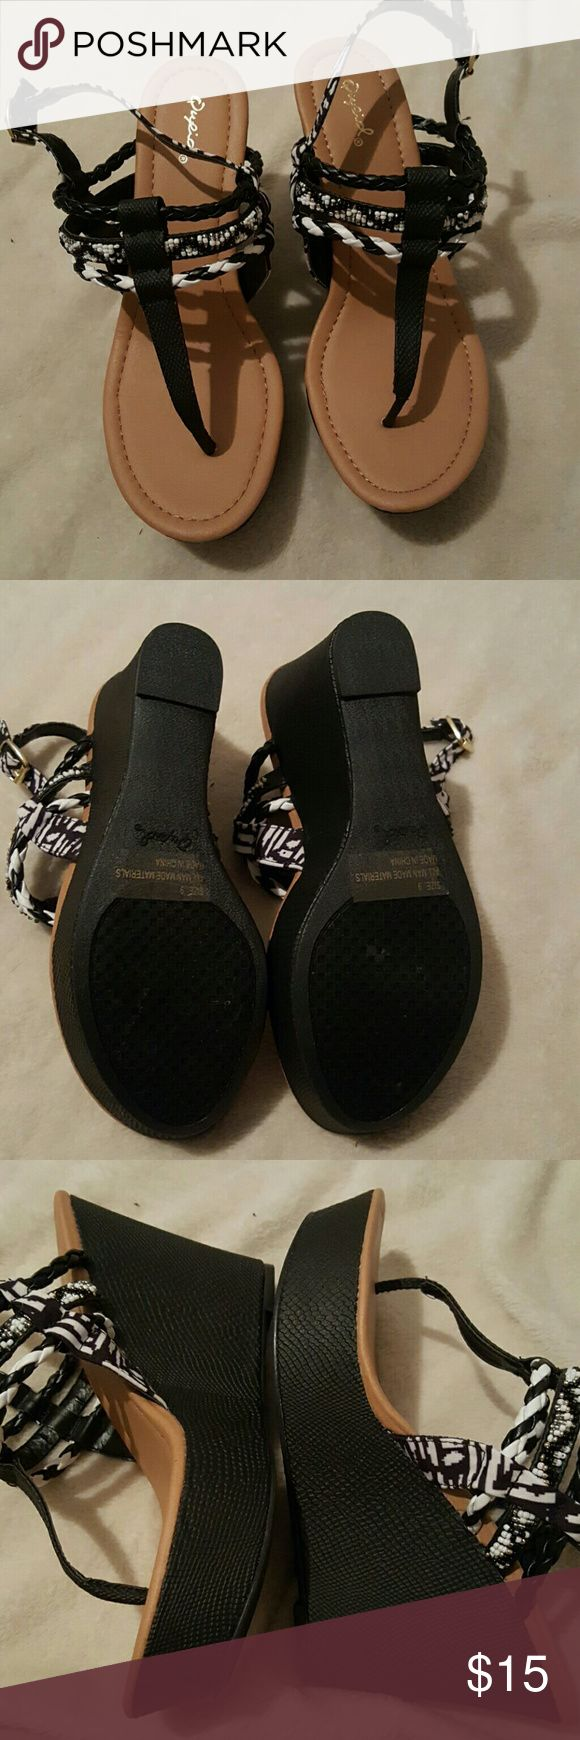 Brand new never worn. Great buy for the summer! Black and white wedge sandals. Shoes Sandals